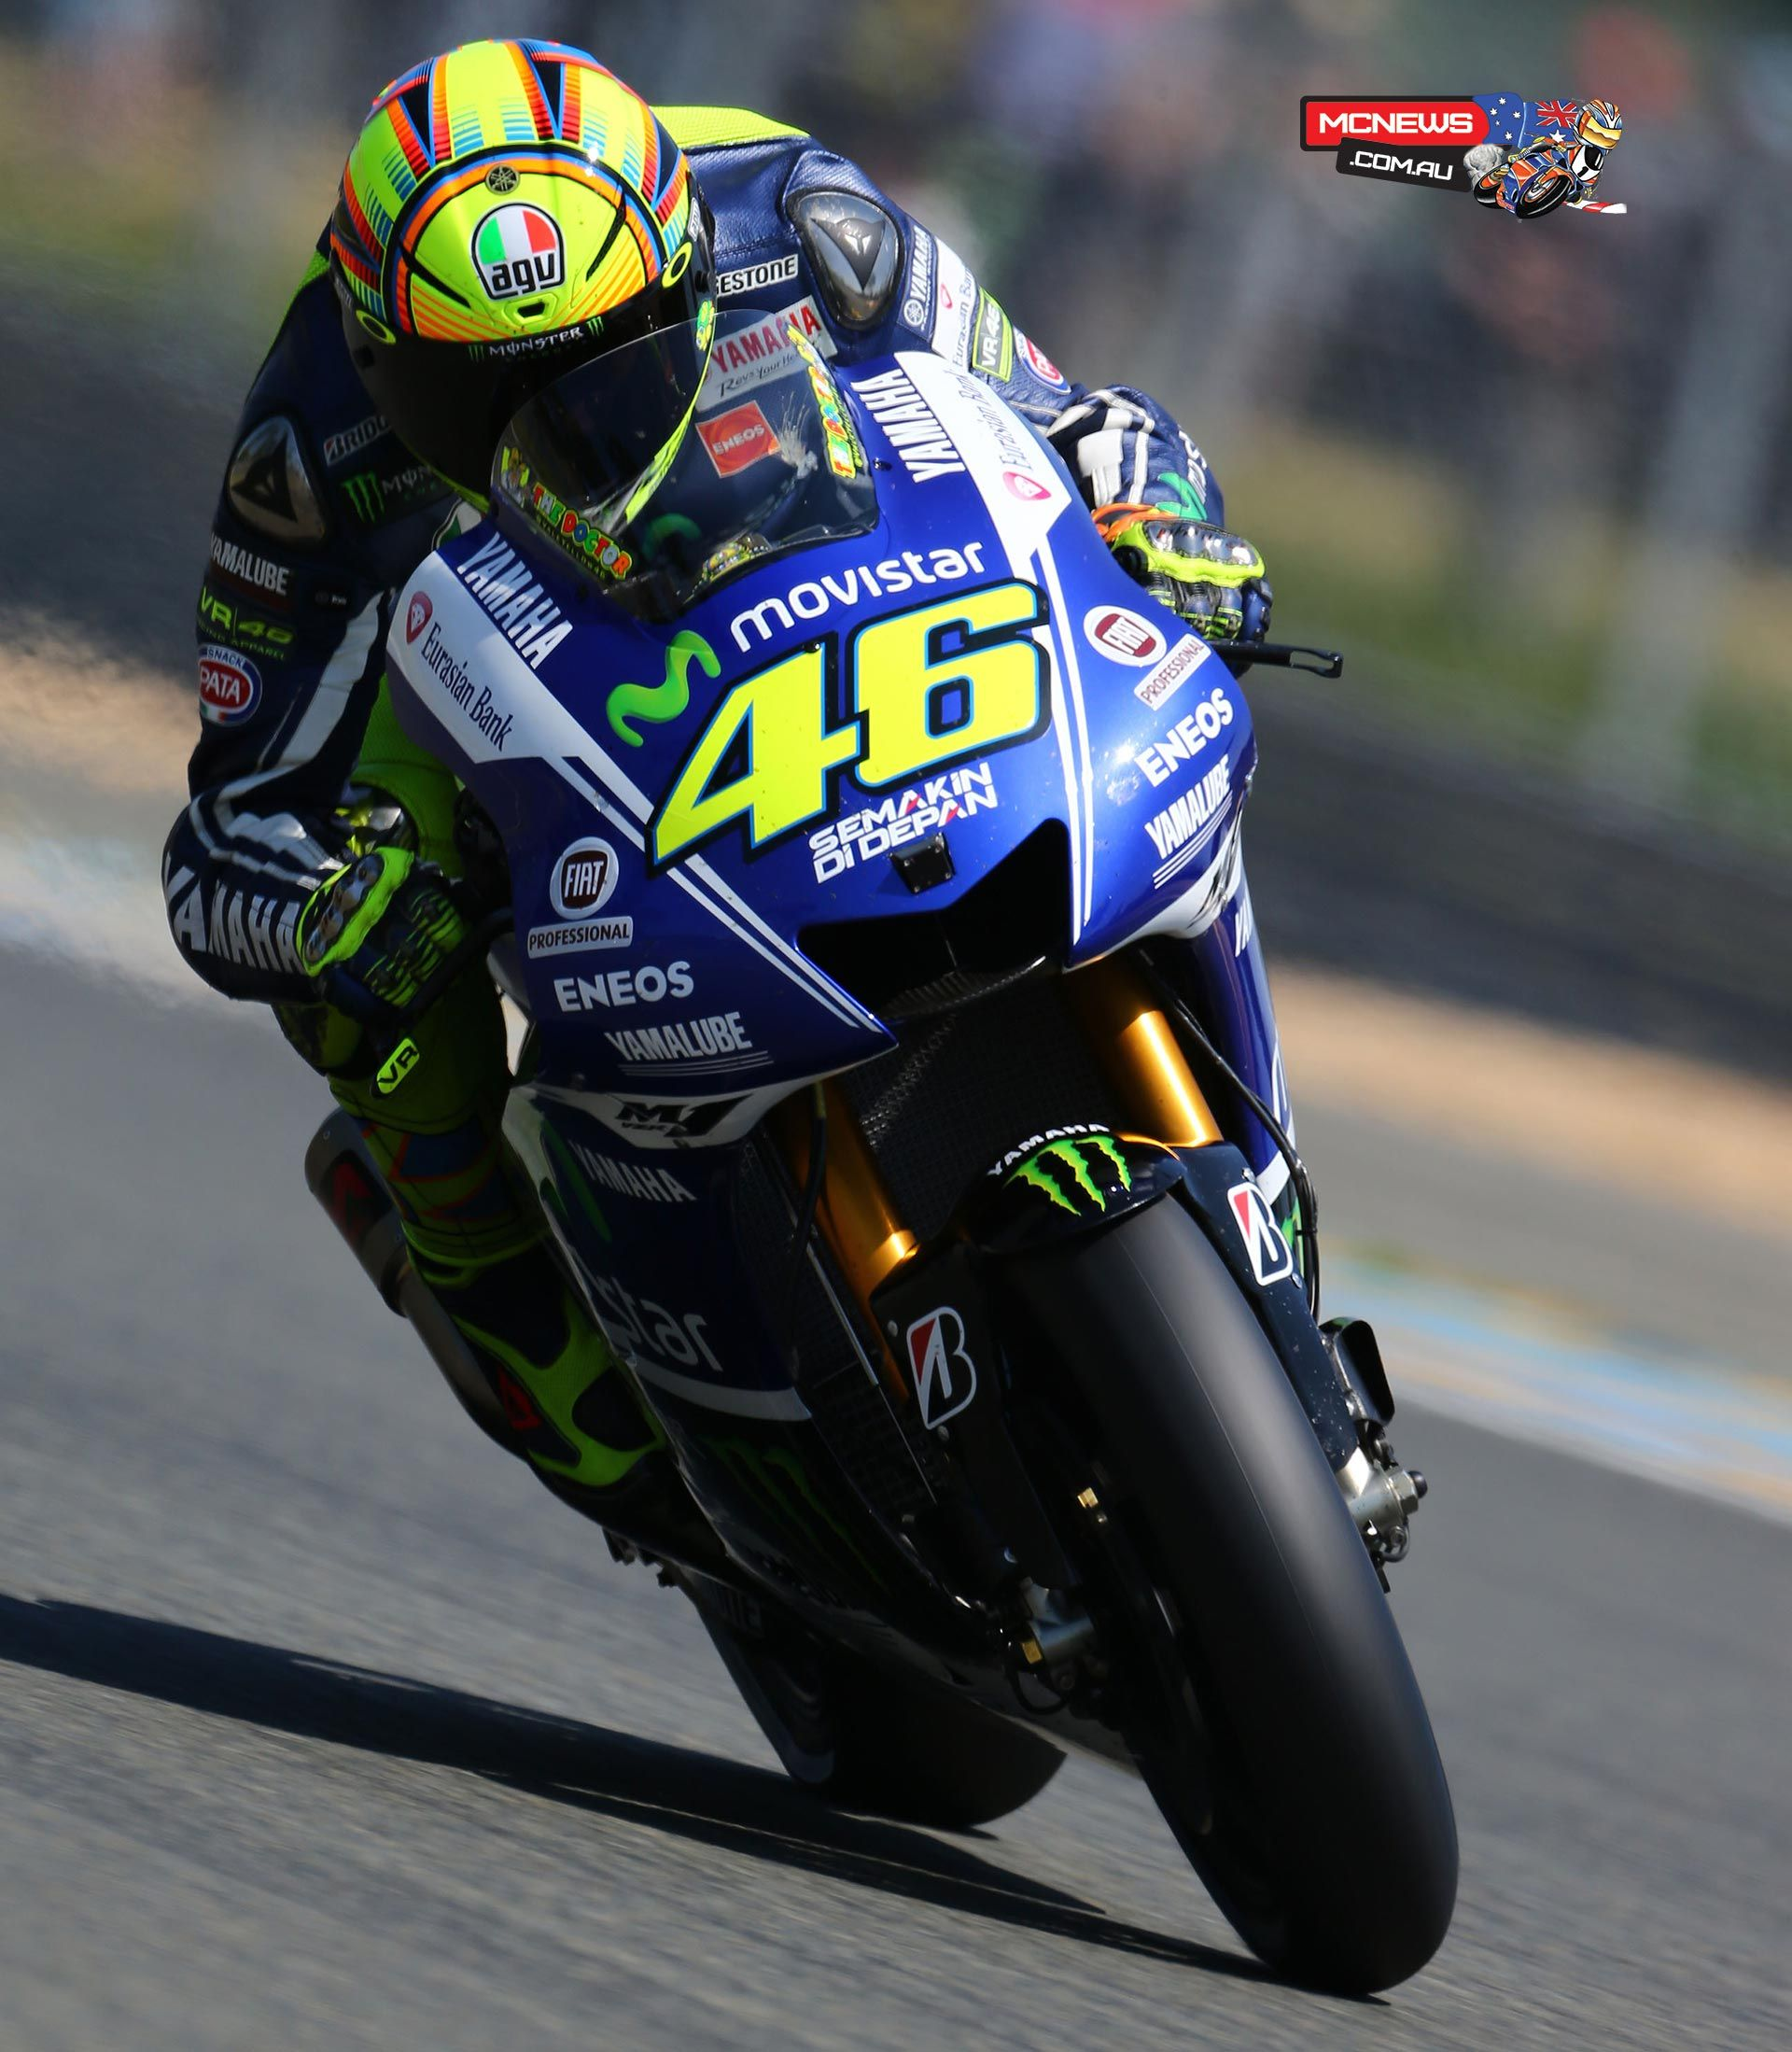 Rossi In The Harth The Rendgen Google Search Valentino Rosi